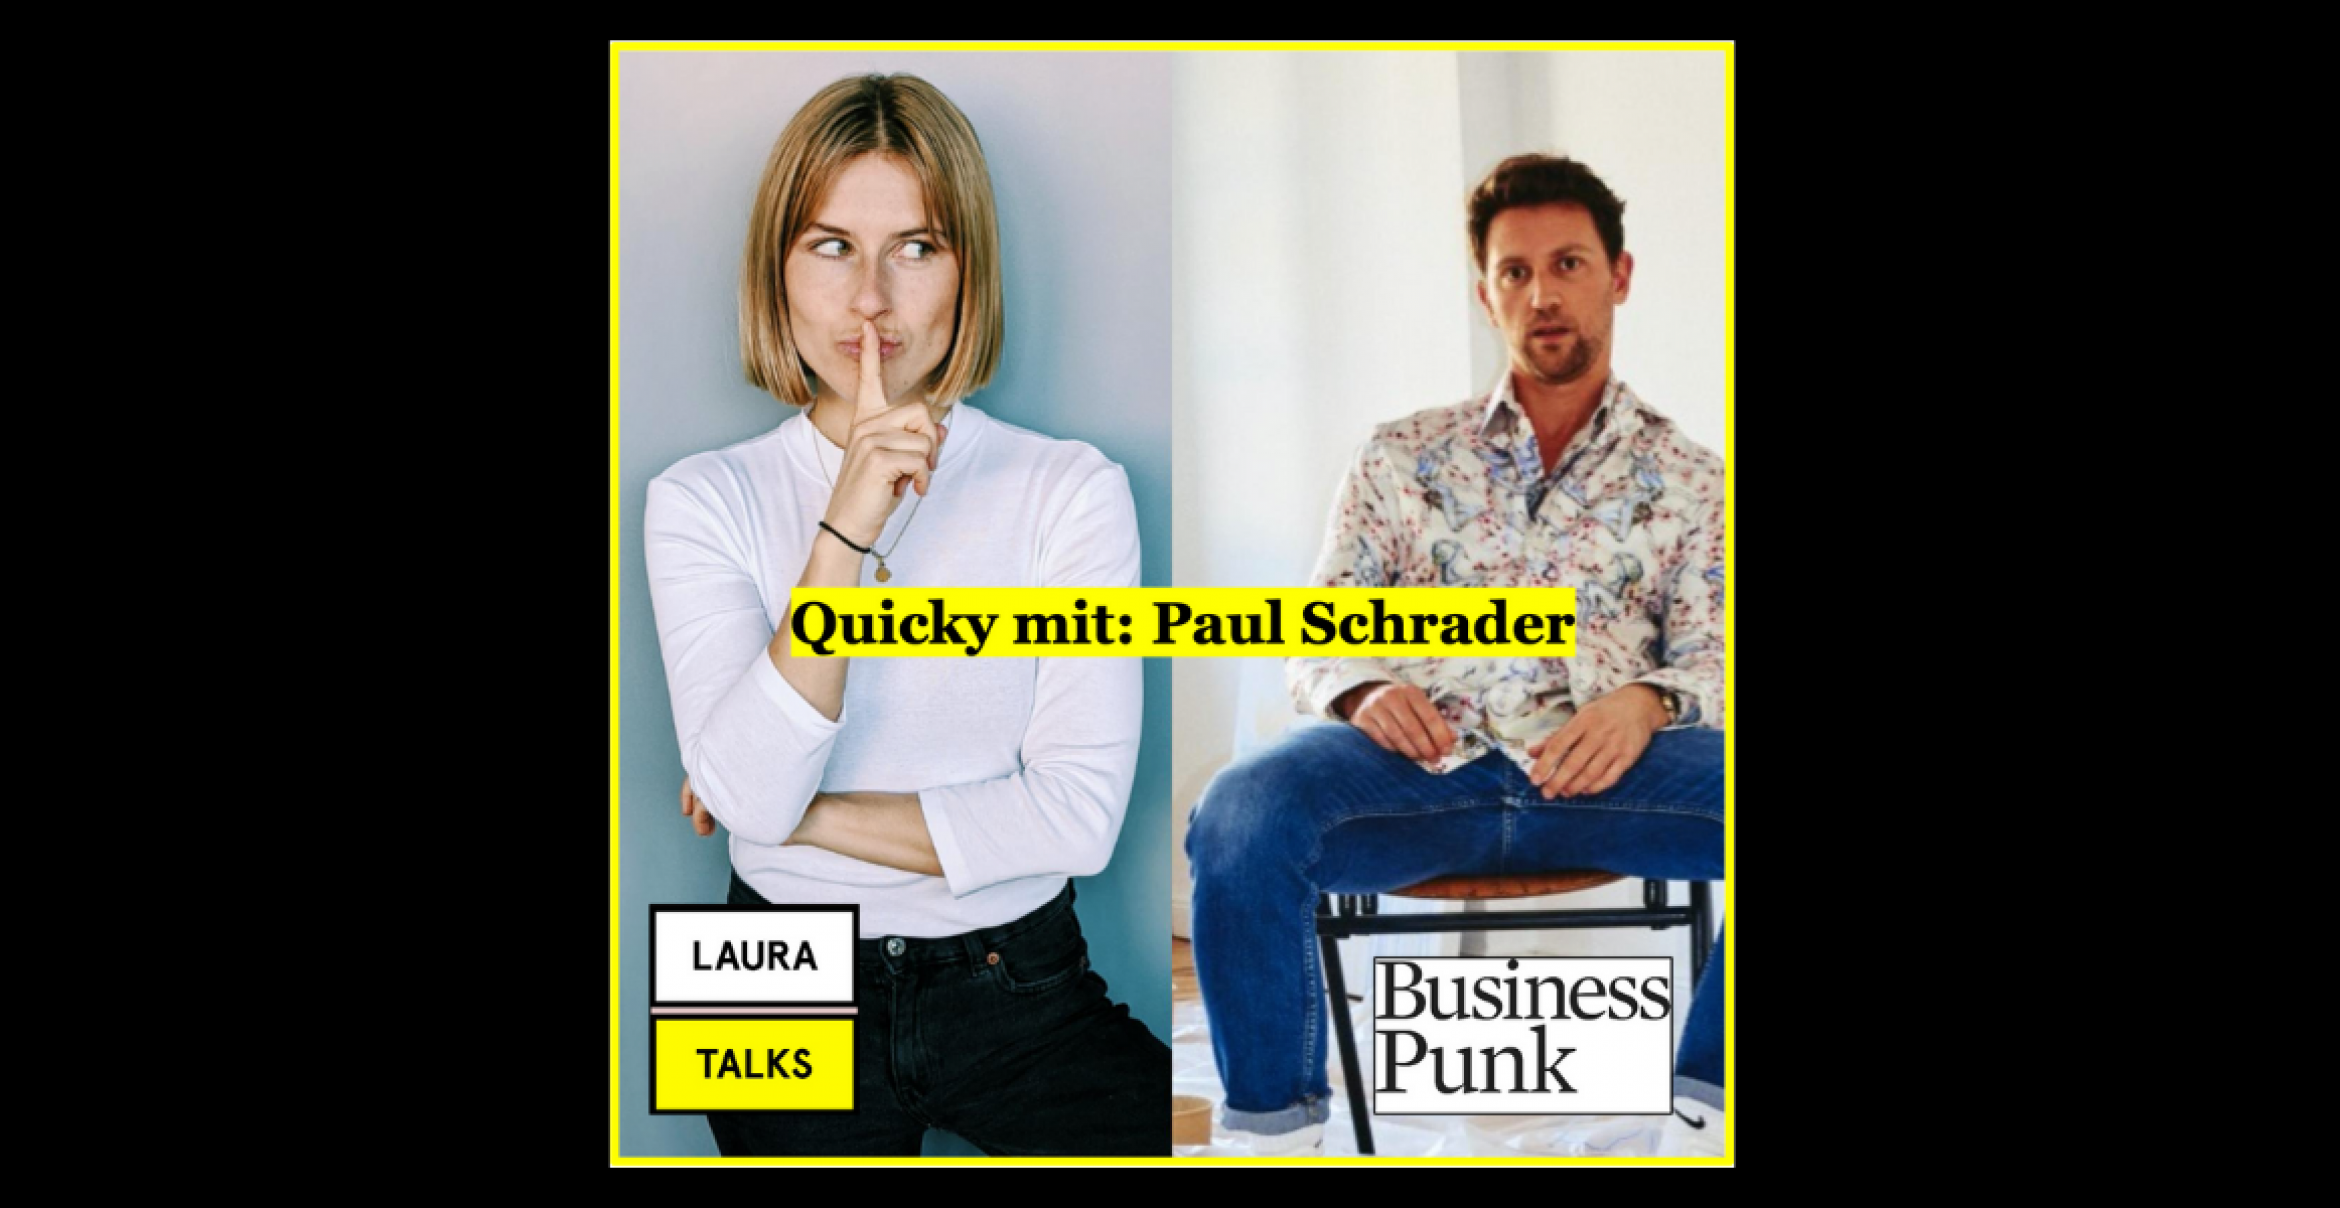 """Laura Talks"": Laura Lewandowski im Interview mit Künstler Paul Schrader"